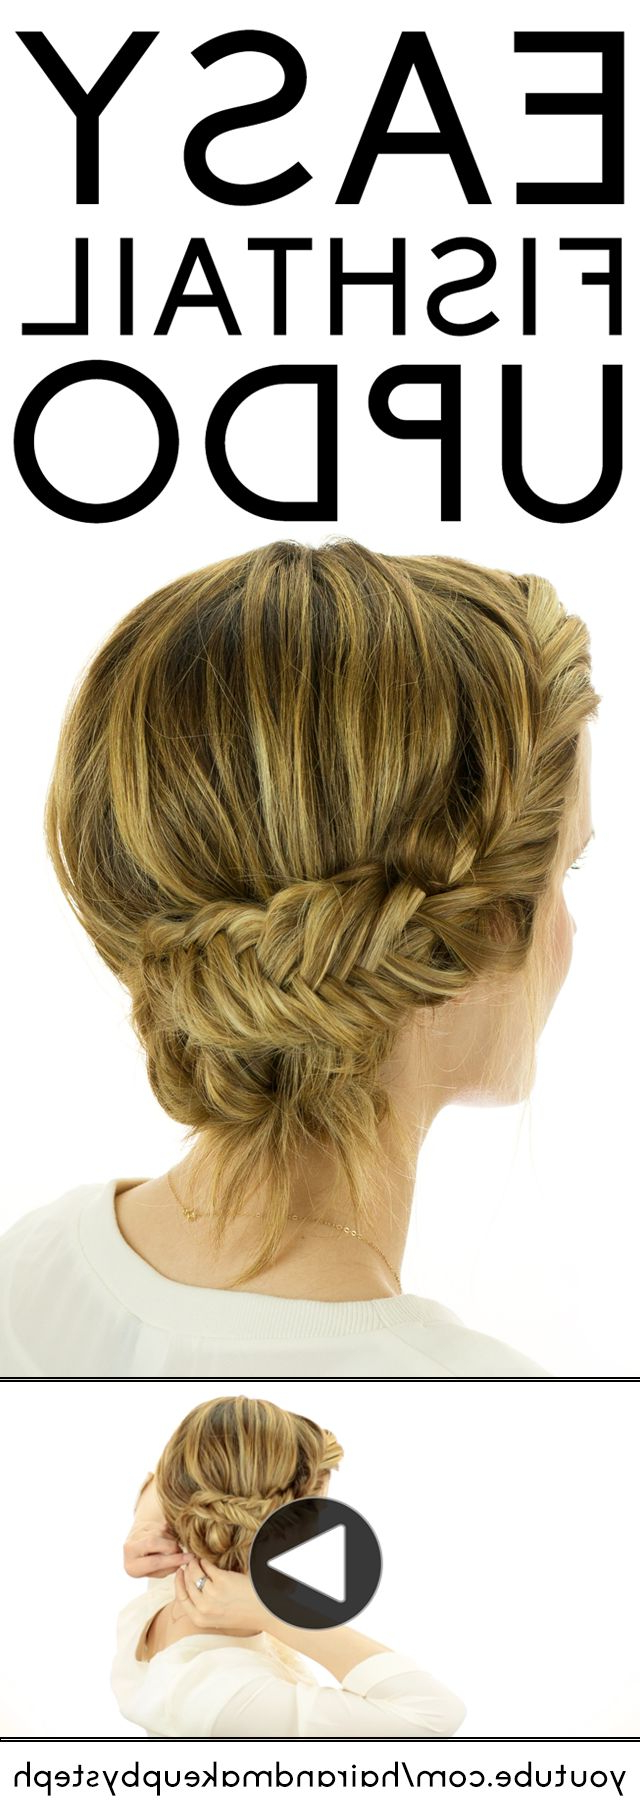 20 Exciting New Intricate Braid Updo Hairstyles – Popular Haircuts With Famous Fishtailed Snail Bun Prom Hairstyles (View 2 of 20)